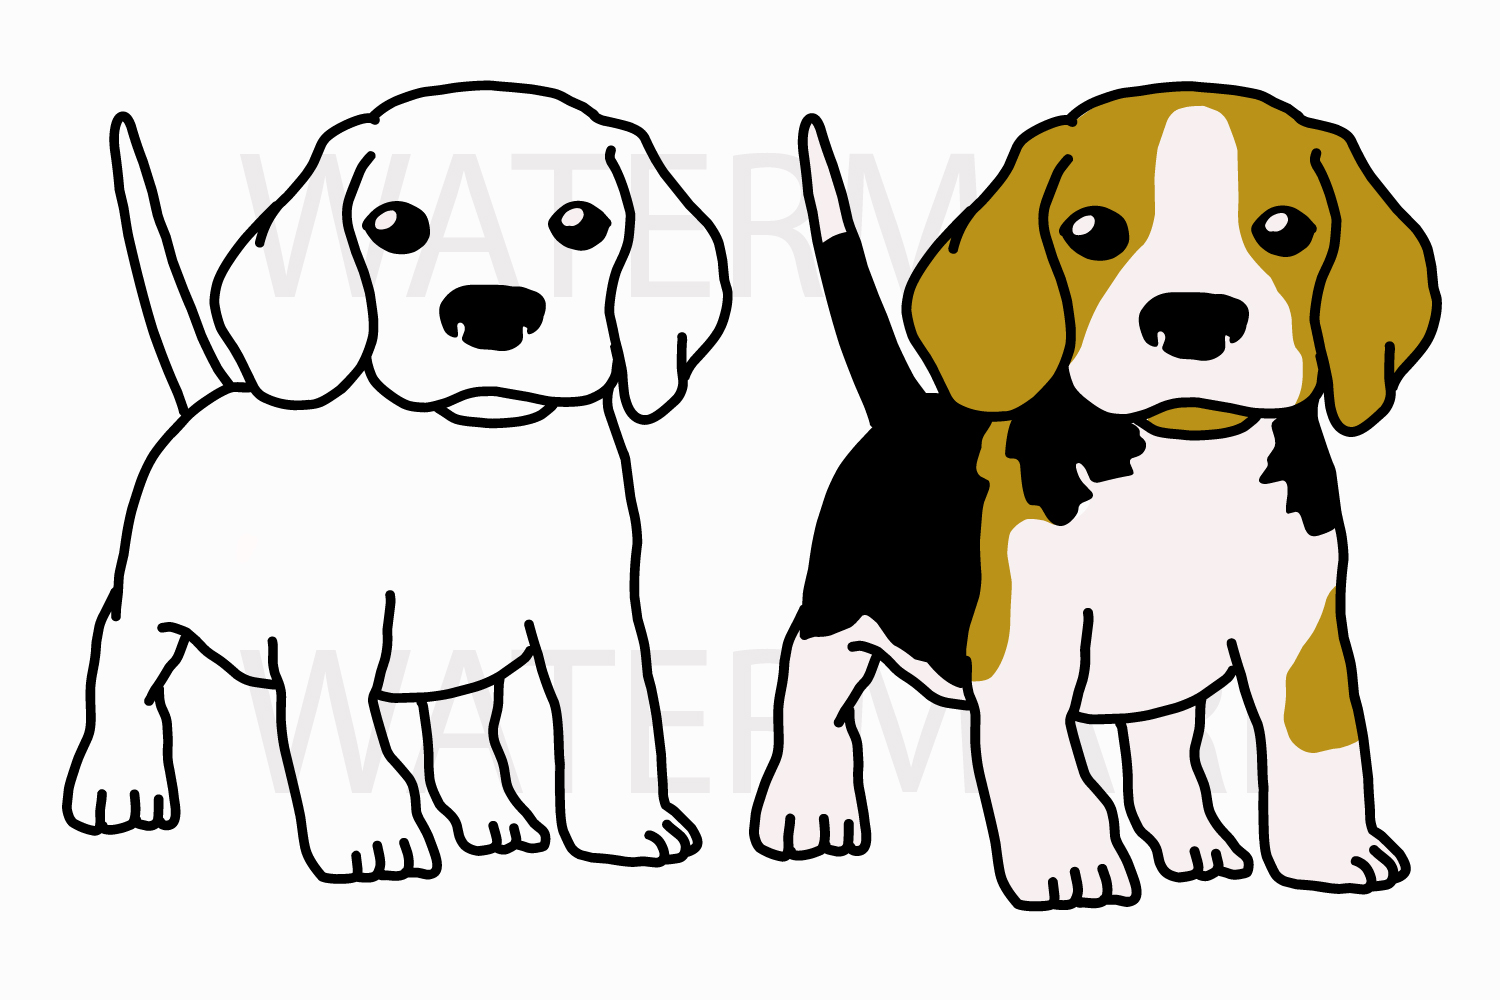 Cute Beagle Puppy Ready to play - Both outline and Color version - SVG/JPG/PNG Hand Drawing example image 1